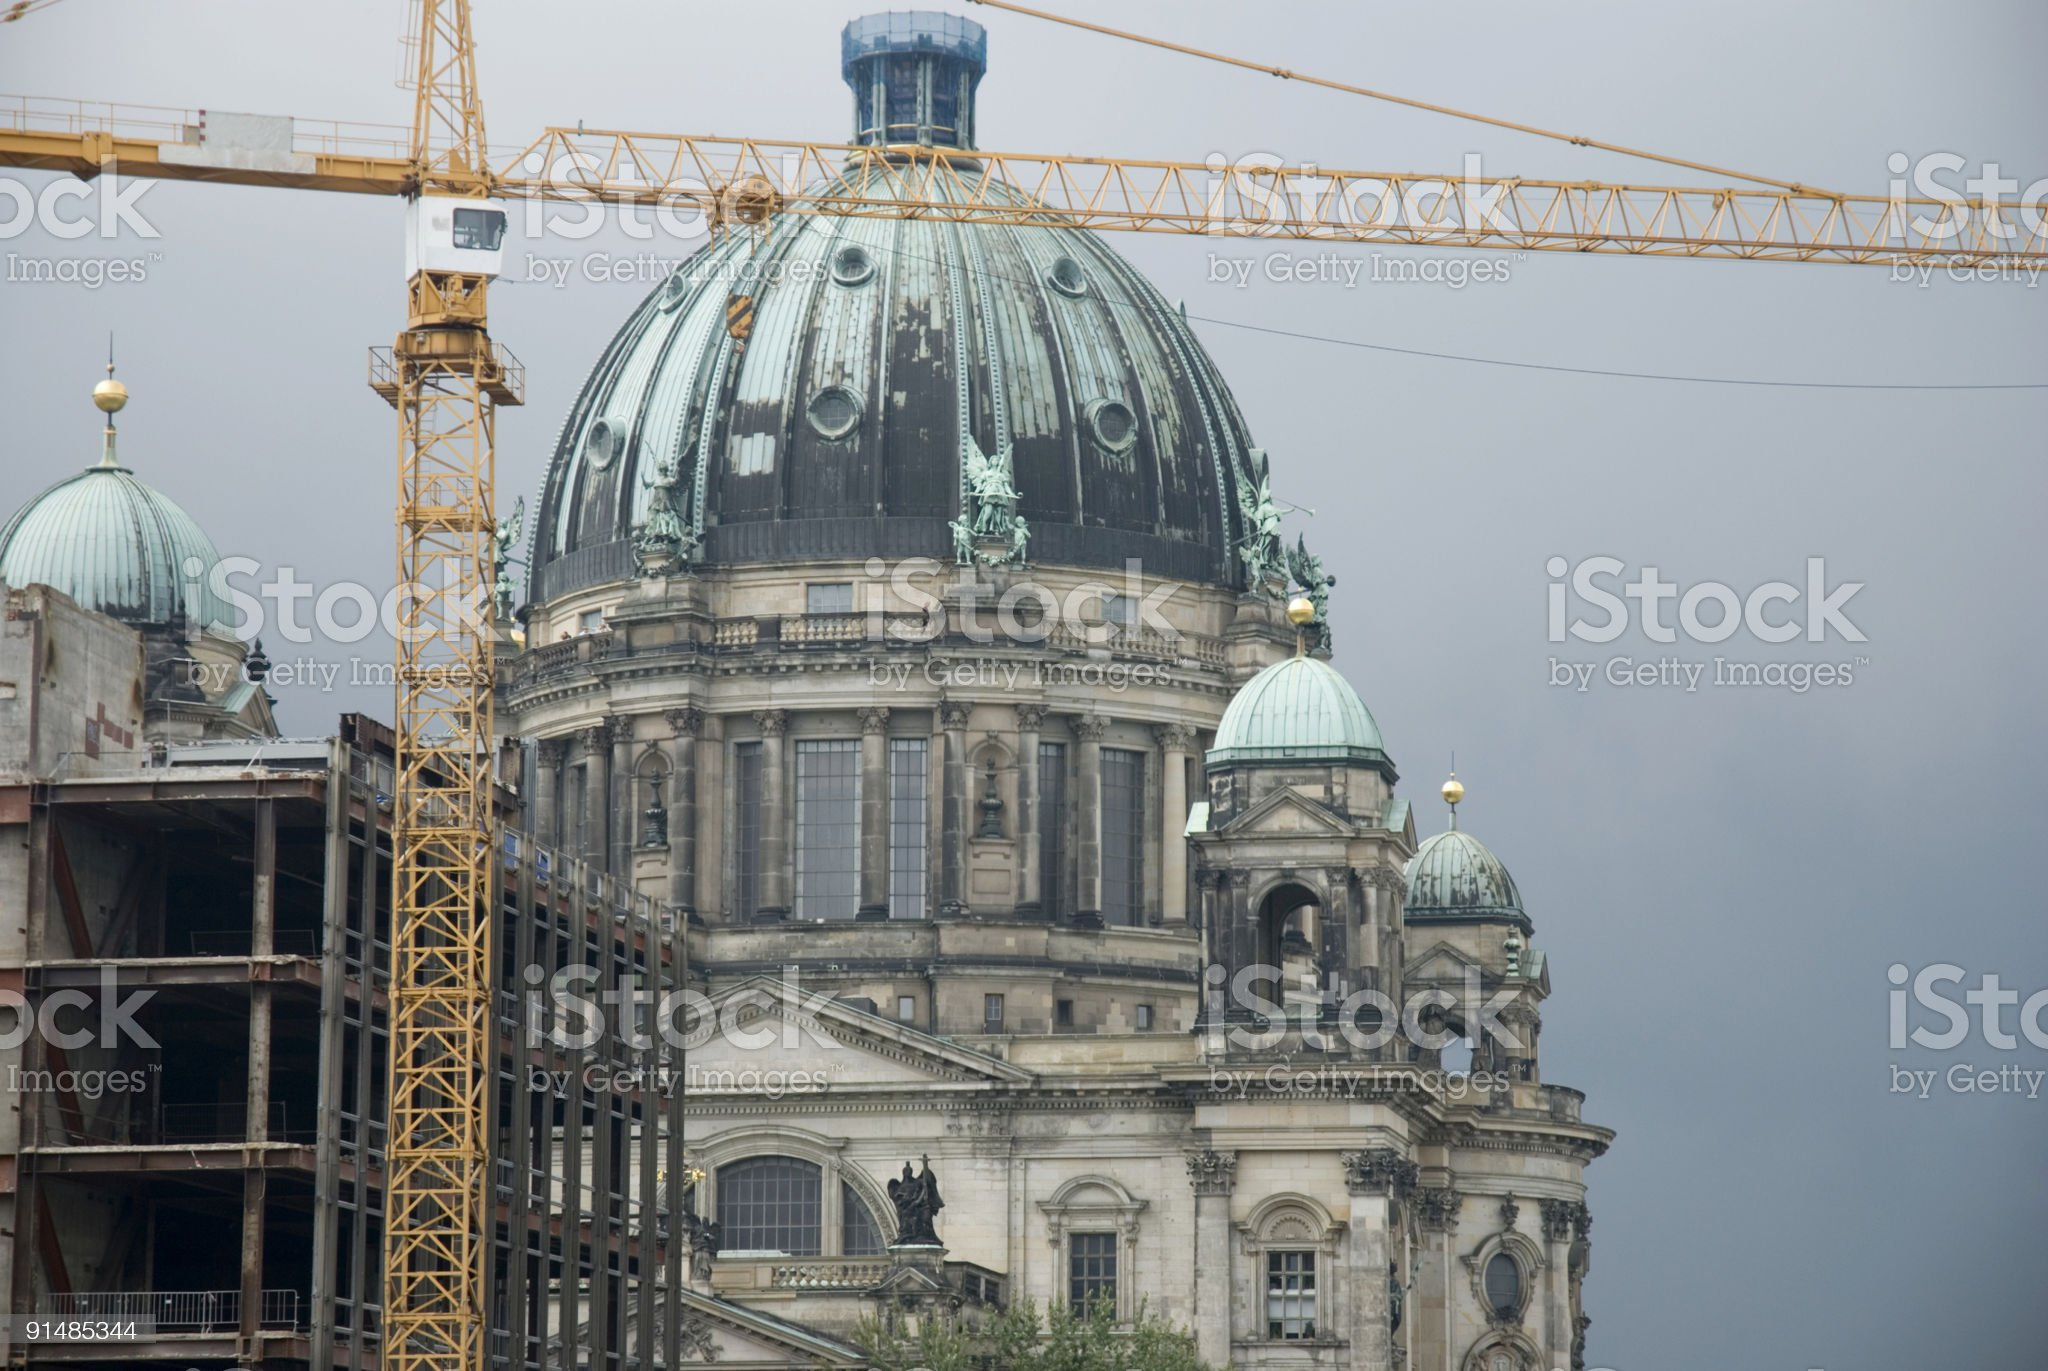 Berlin Cathedral/Berliner Dom with crane royalty-free stock photo